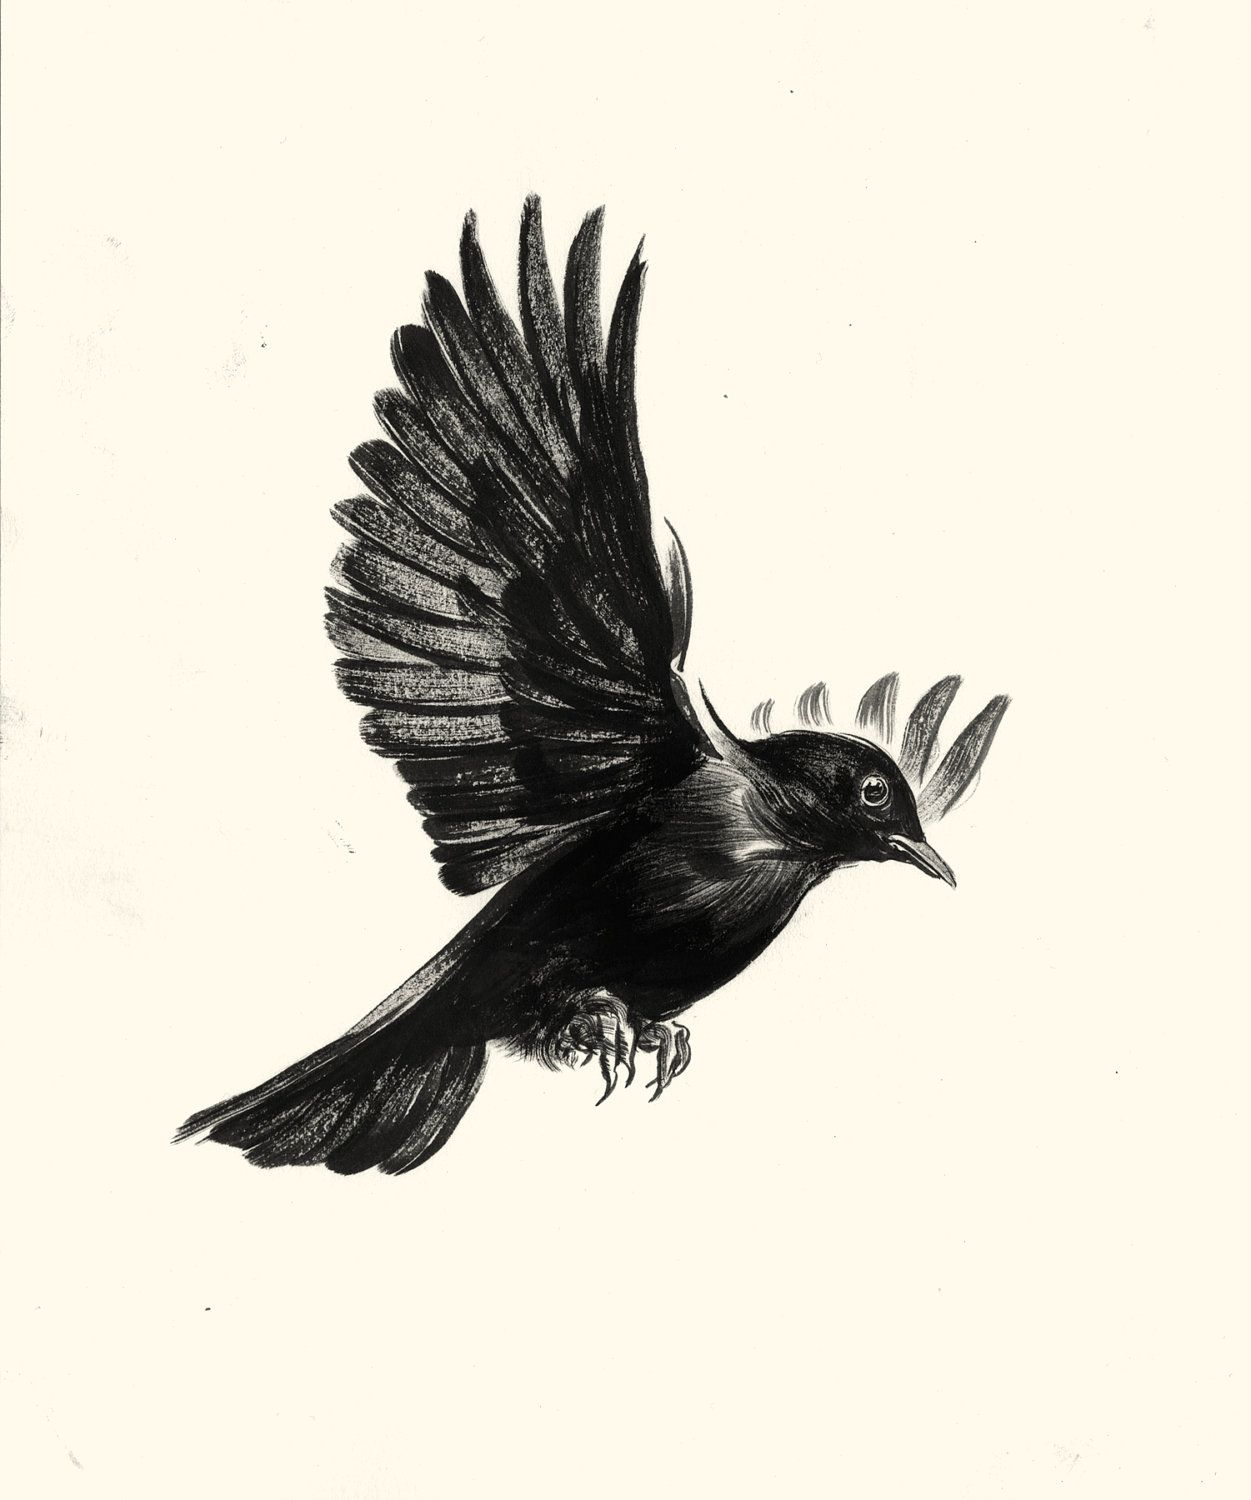 Blackbird of harkers drop 7200 via etsy art on my sleeve blackbird of harkers drop 7200 via etsy buycottarizona